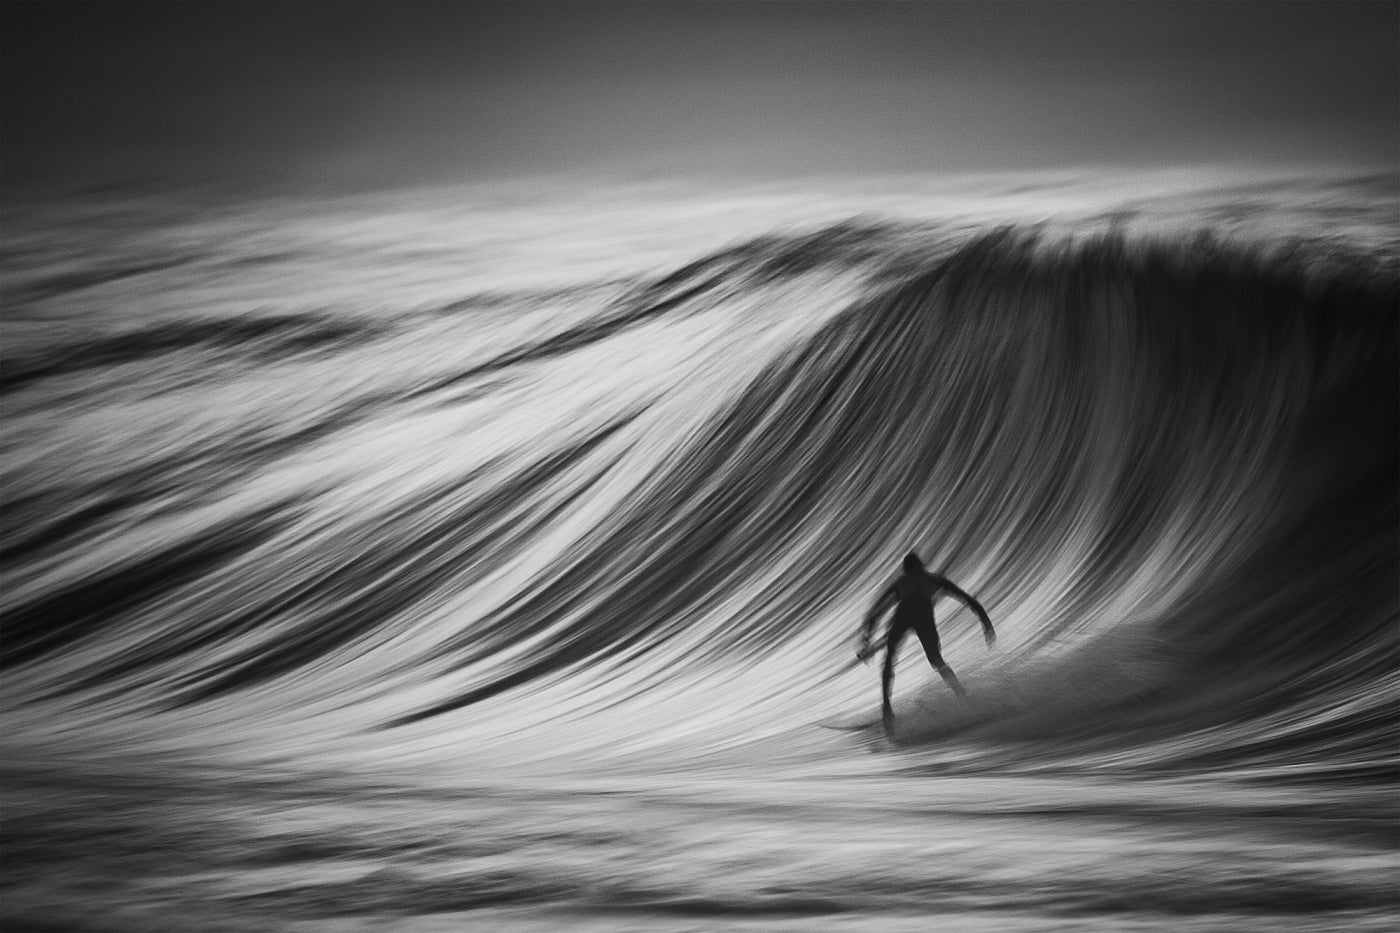 Silver surfer, Canon Light Awards Award winning image by Thurston Photo